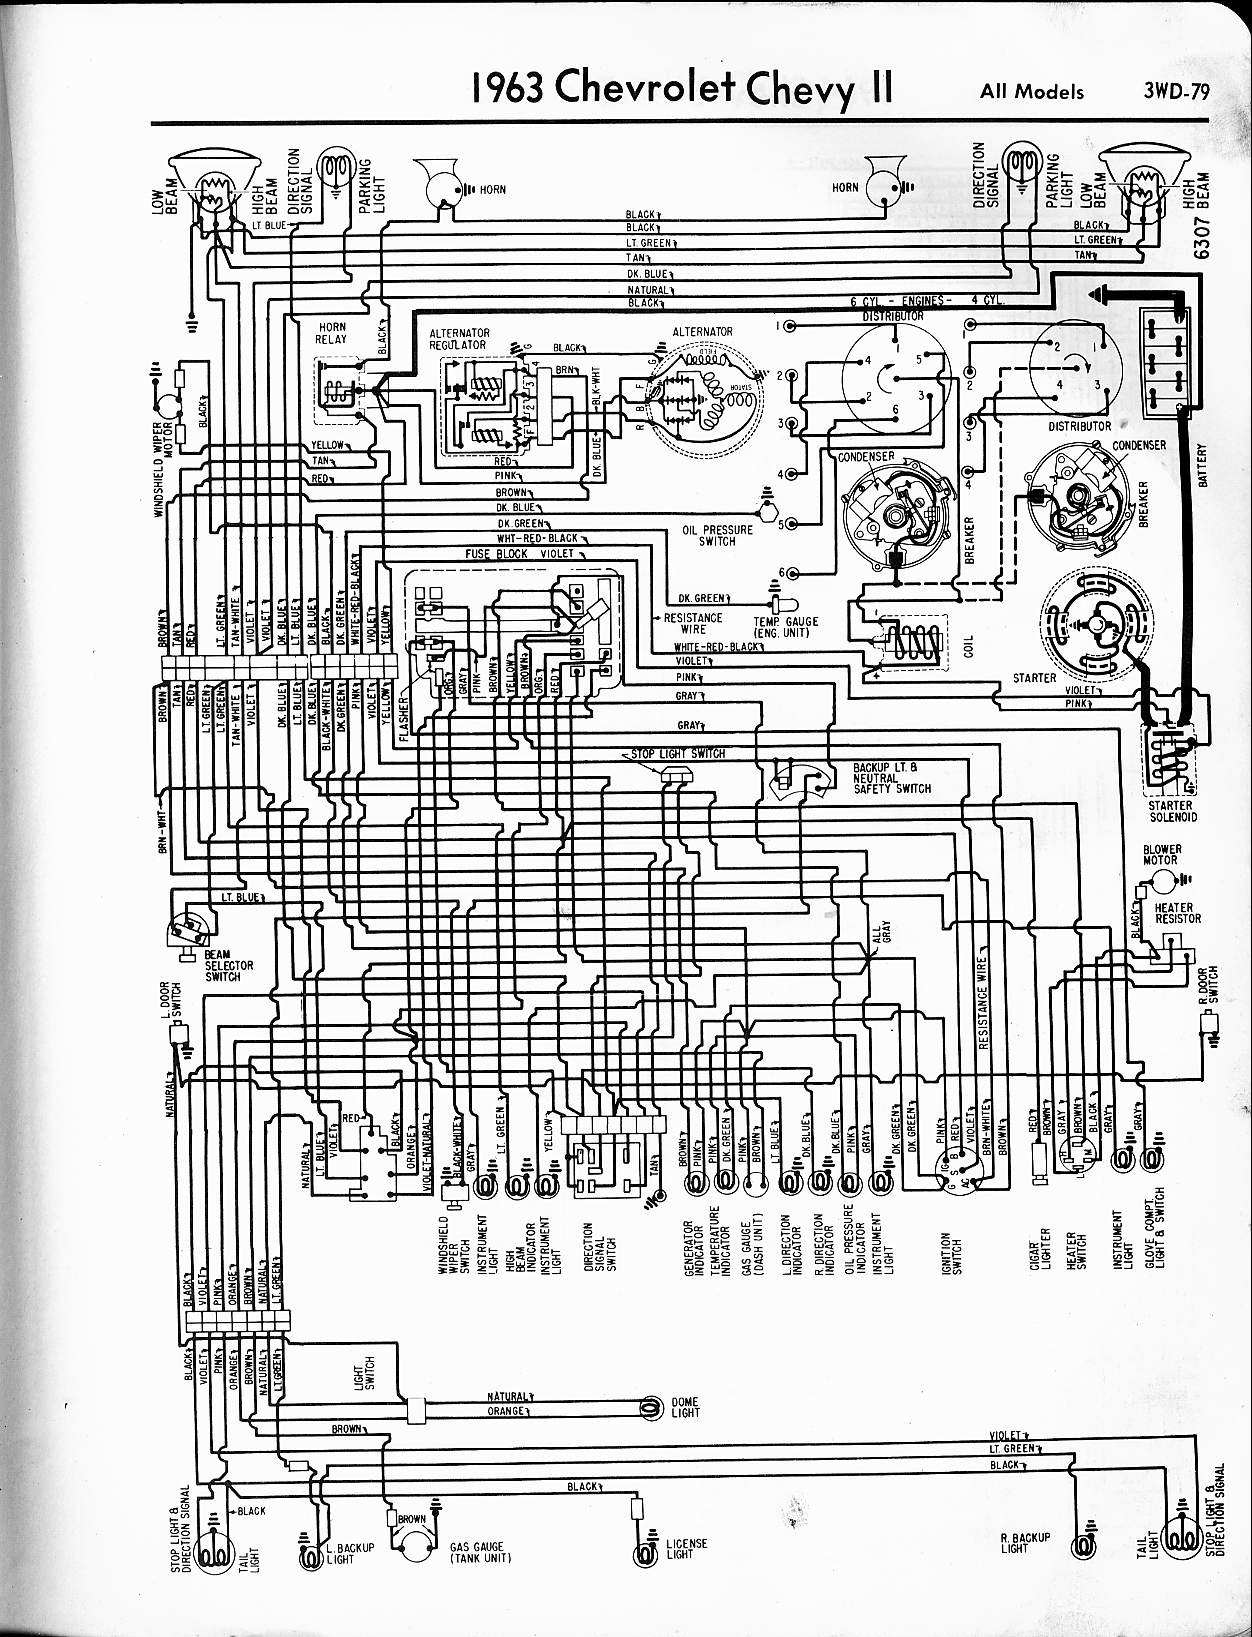 MWireChev63_3WD 079 57 65 chevy wiring diagrams 3 Wire Headlight Wiring Diagram at bayanpartner.co